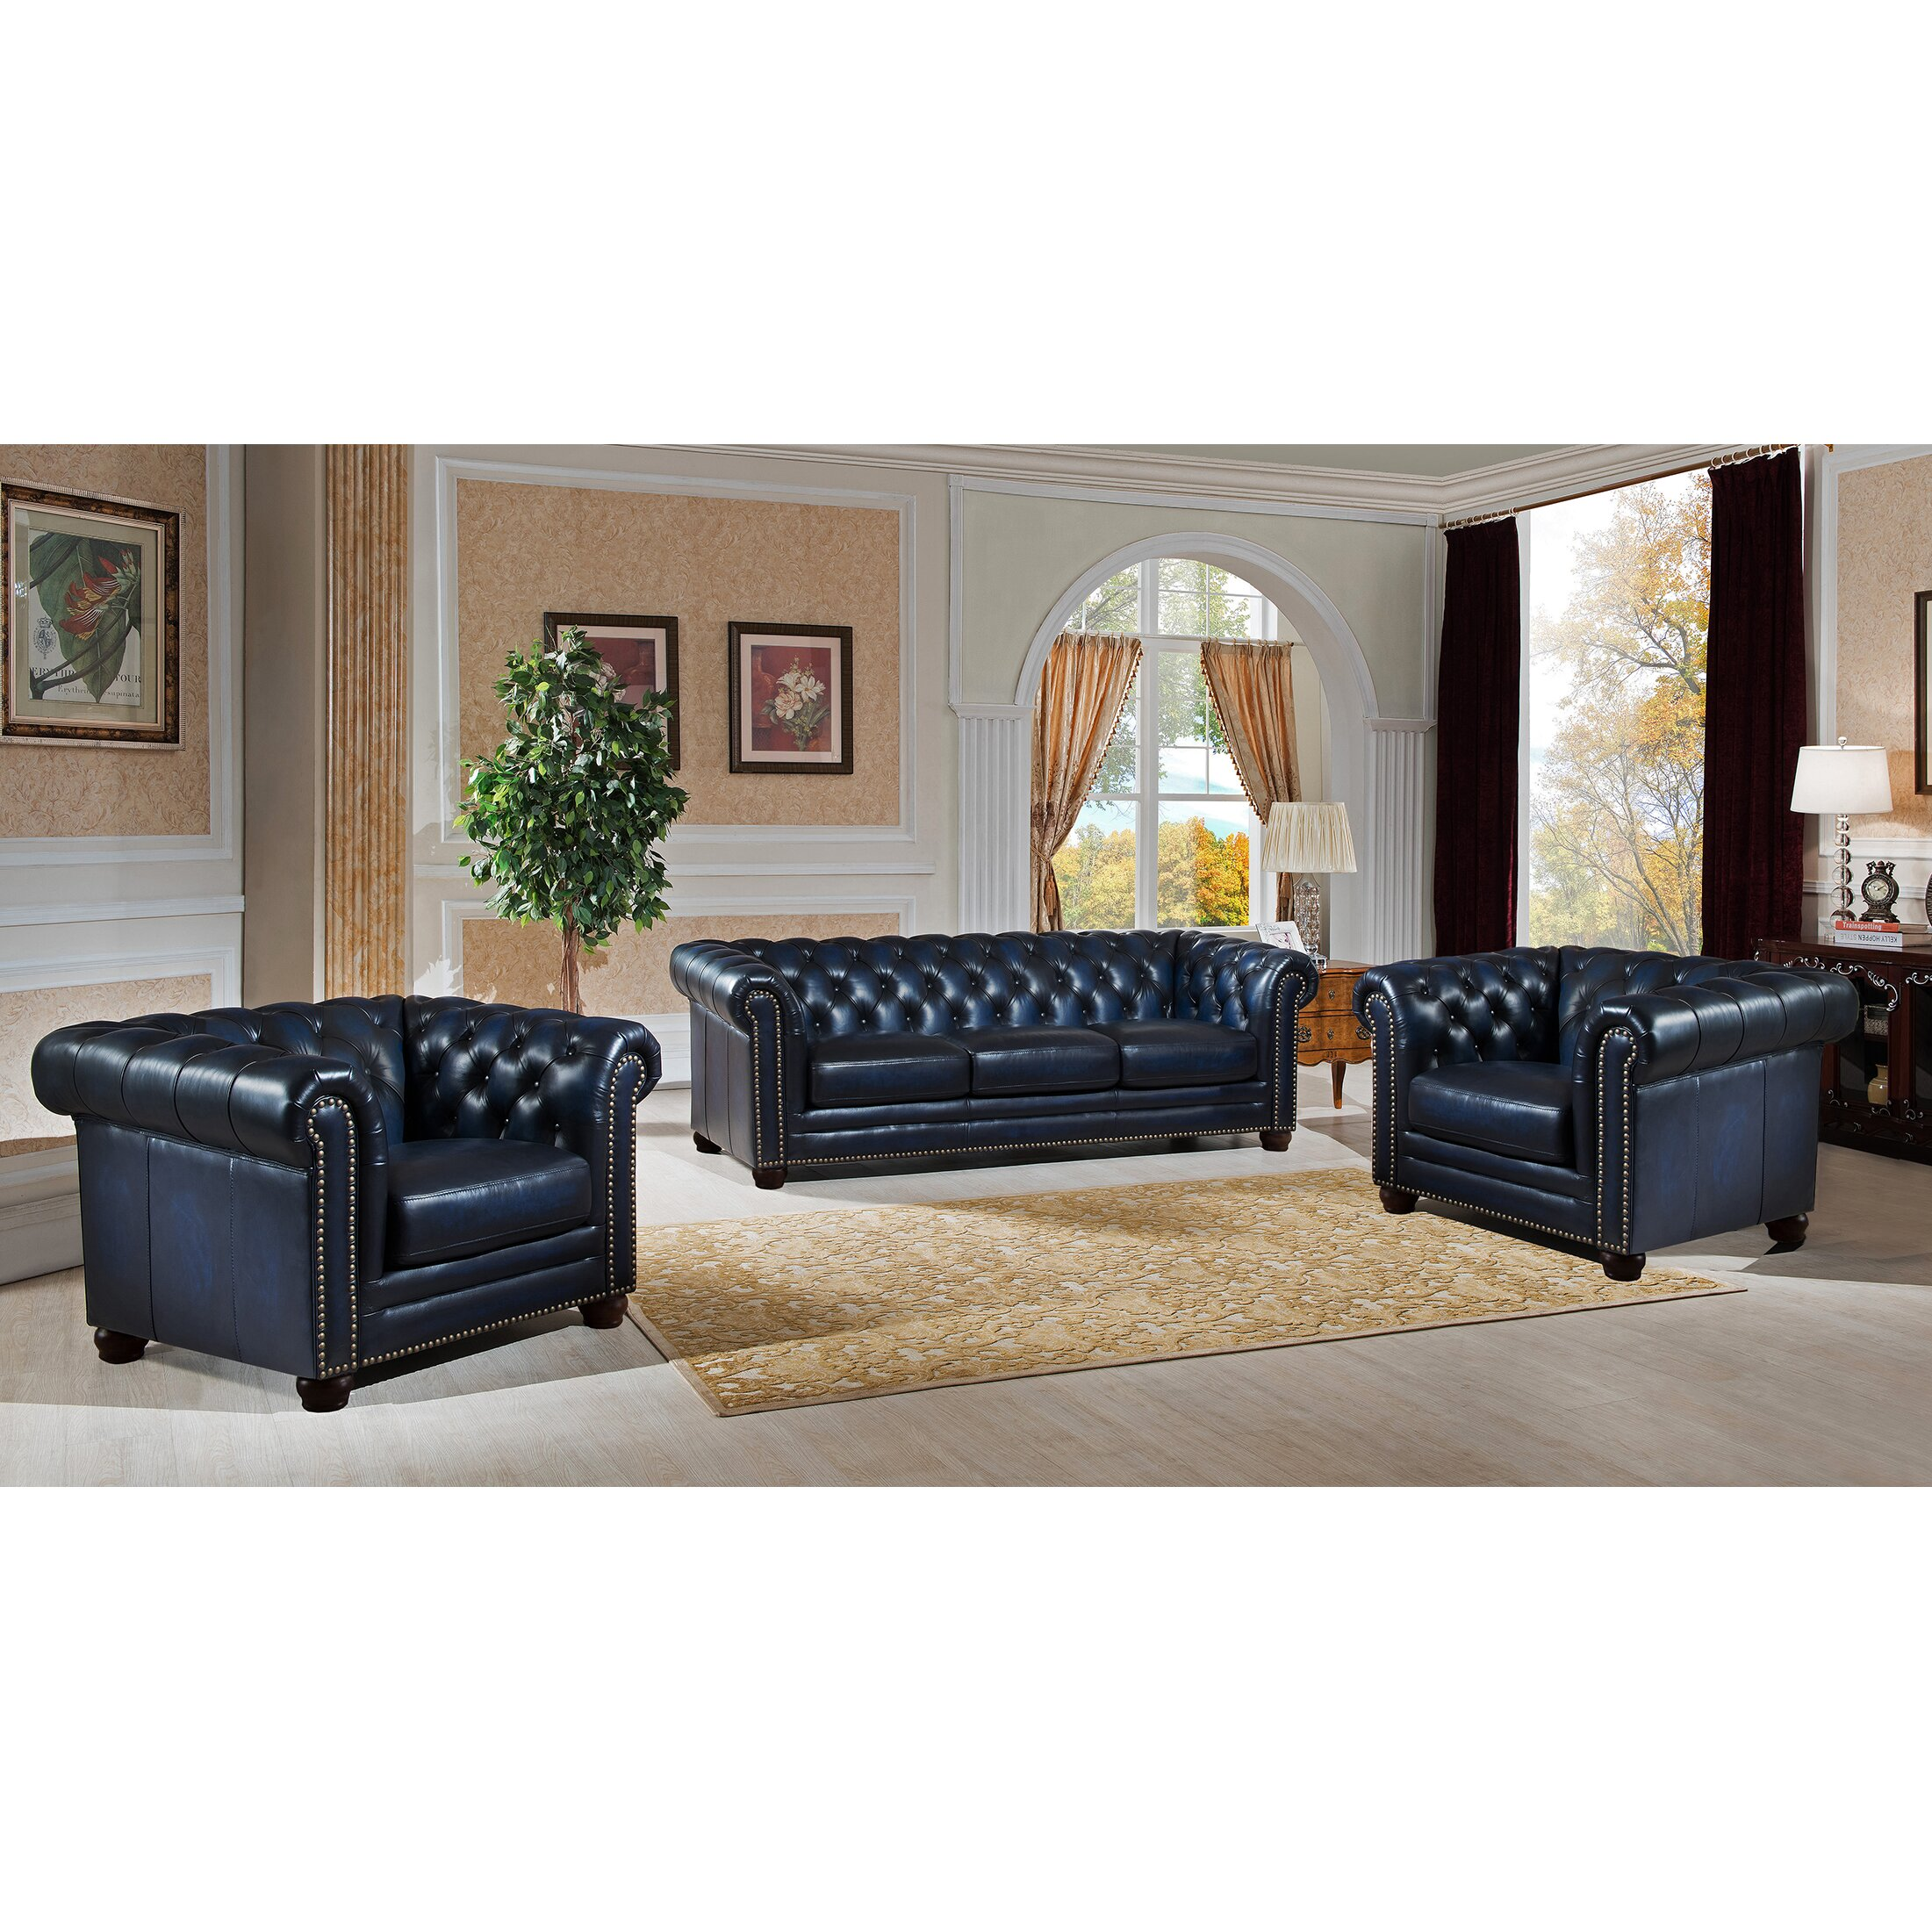 Amax Nebraska Chesterfield Genuine Leather Sofa and Chair